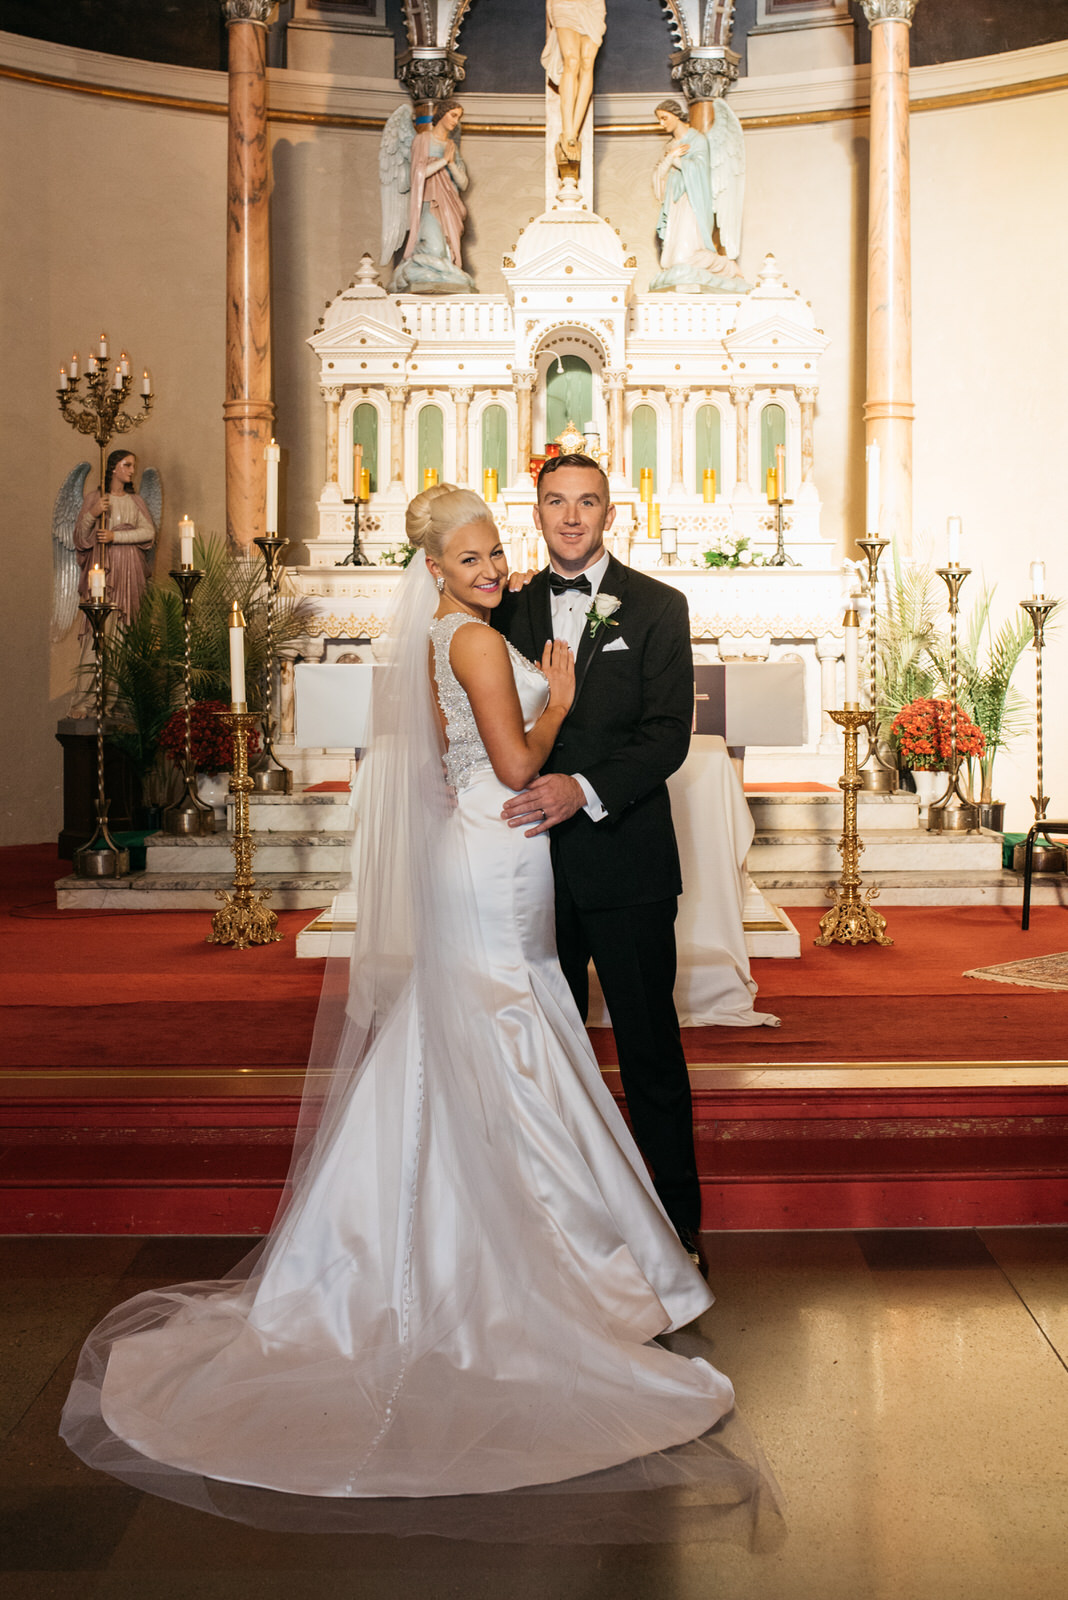 hilton_garden_inn_southpointe_pittsburgh_weddings_49.jpg